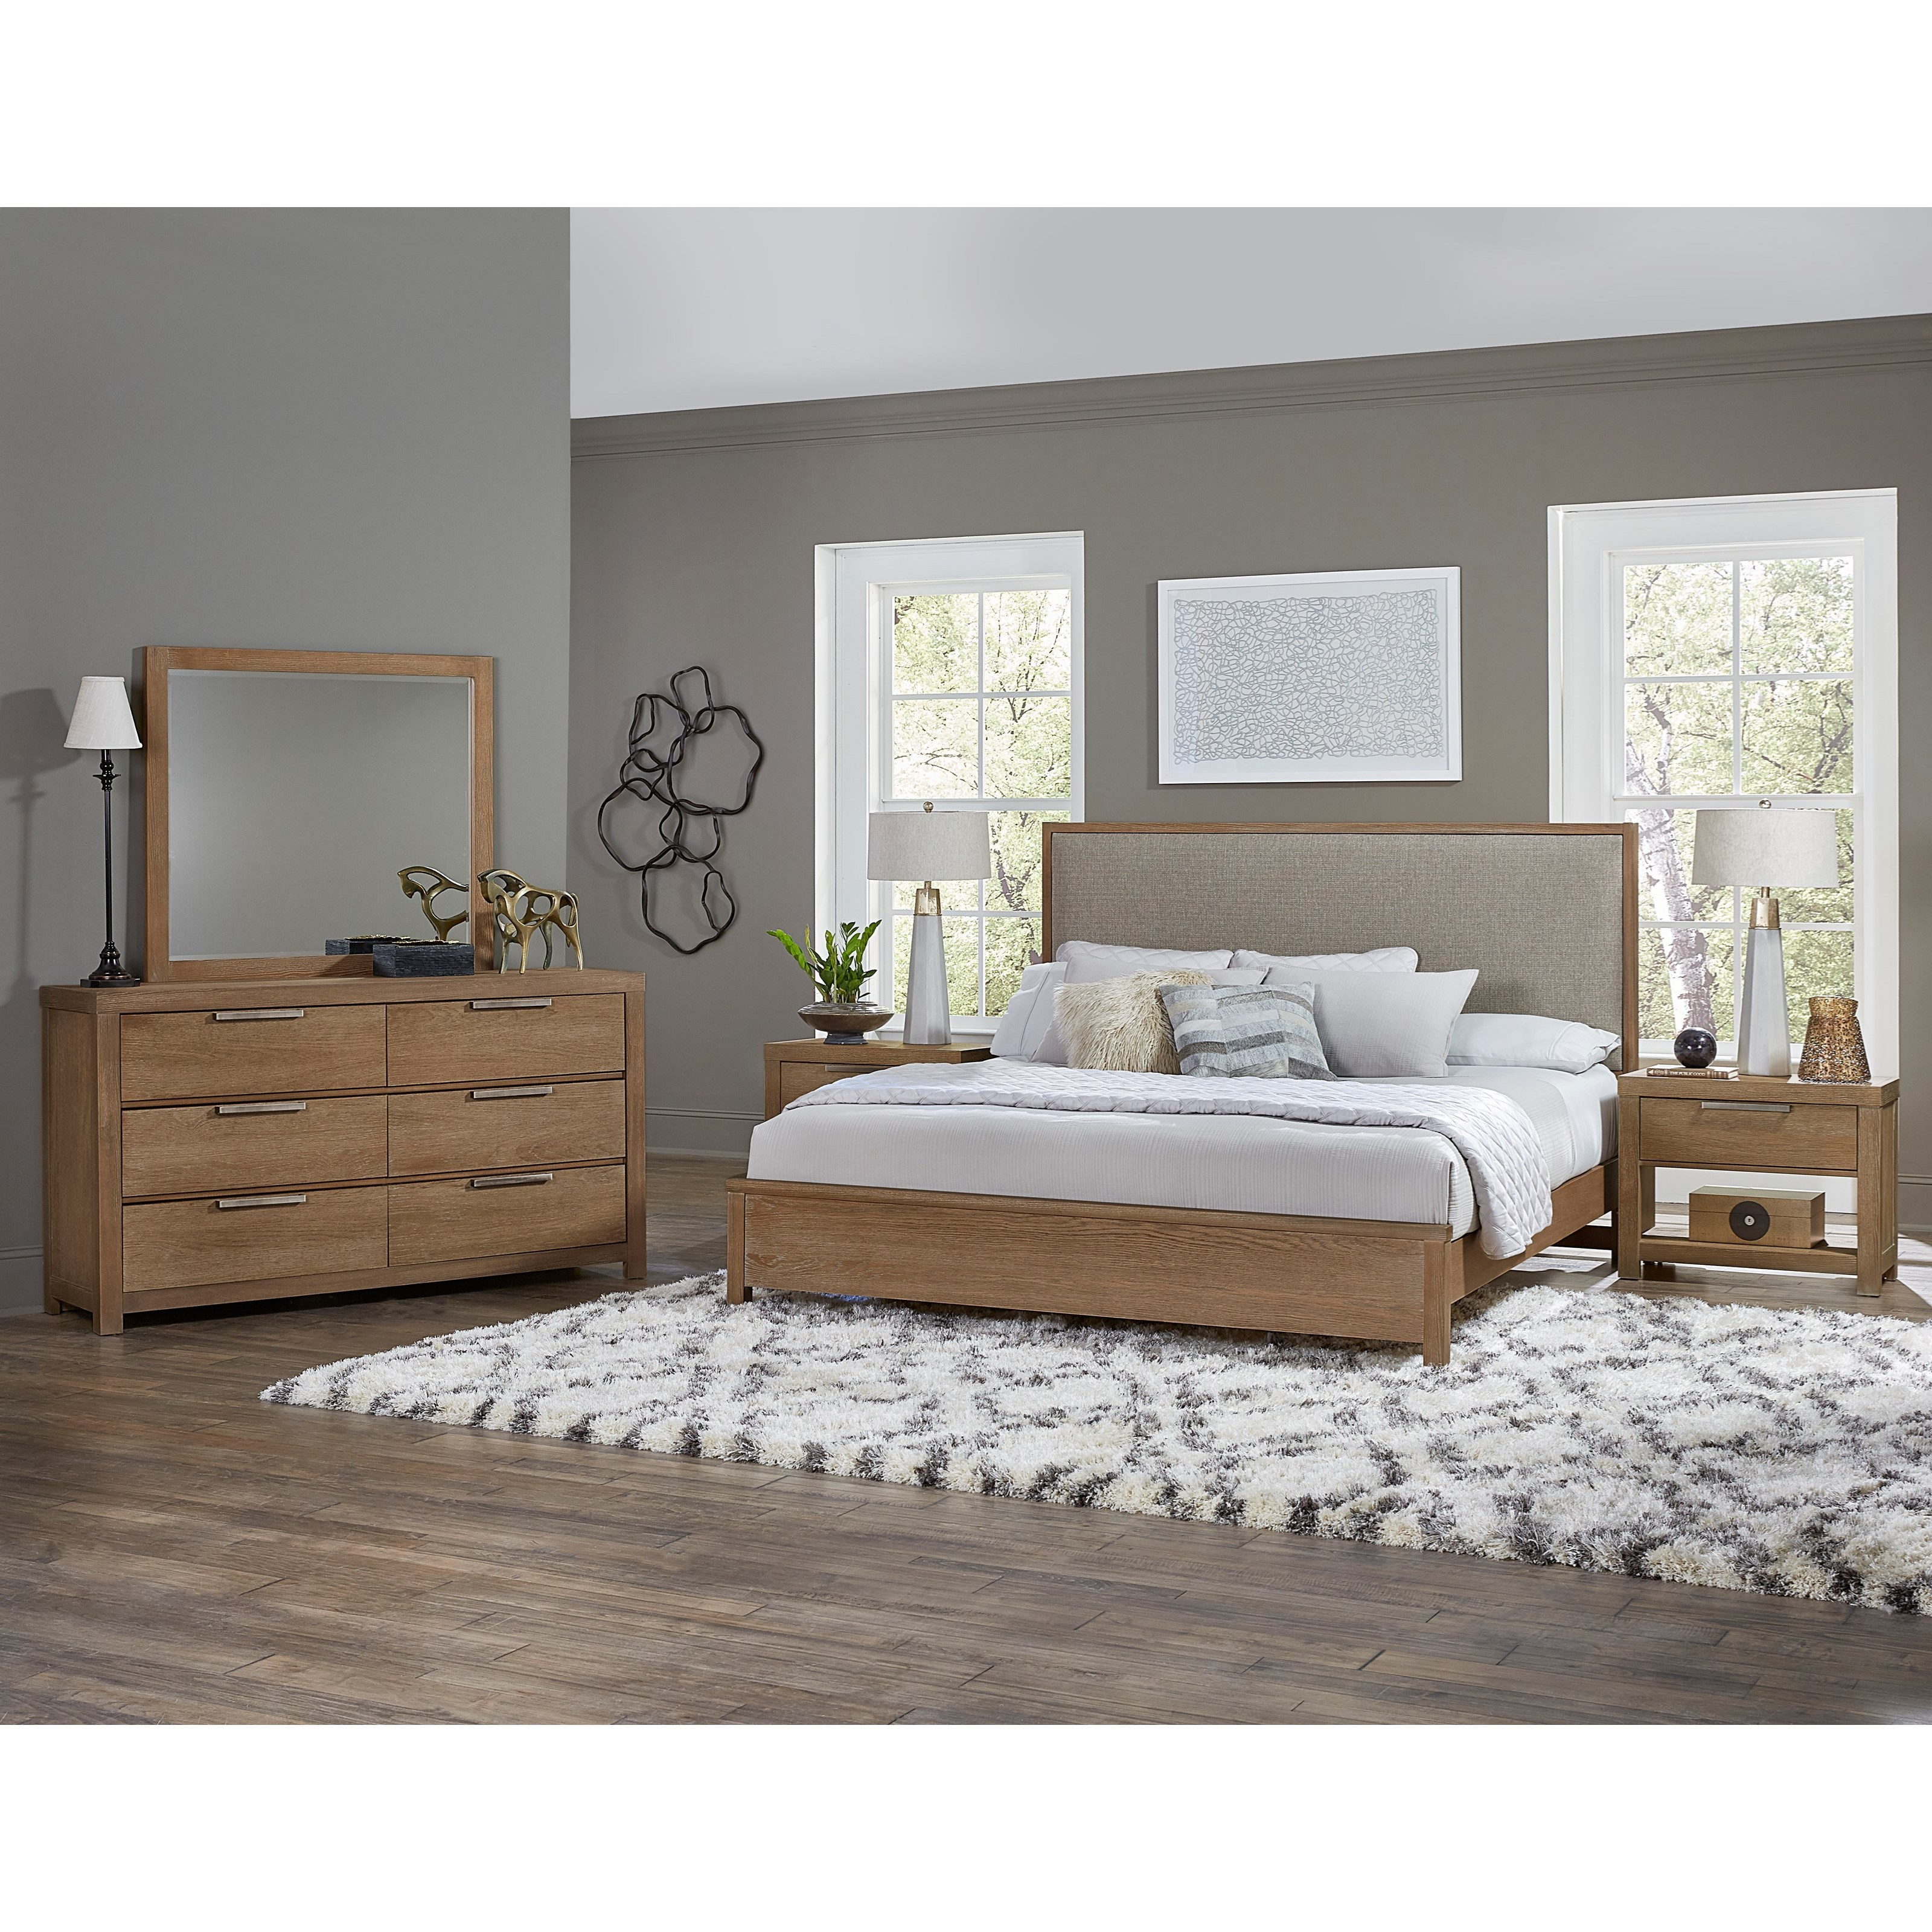 Vaughan Bassett American Modern King Bedroom Group - Item Number: 652 K Bedroom Group 1